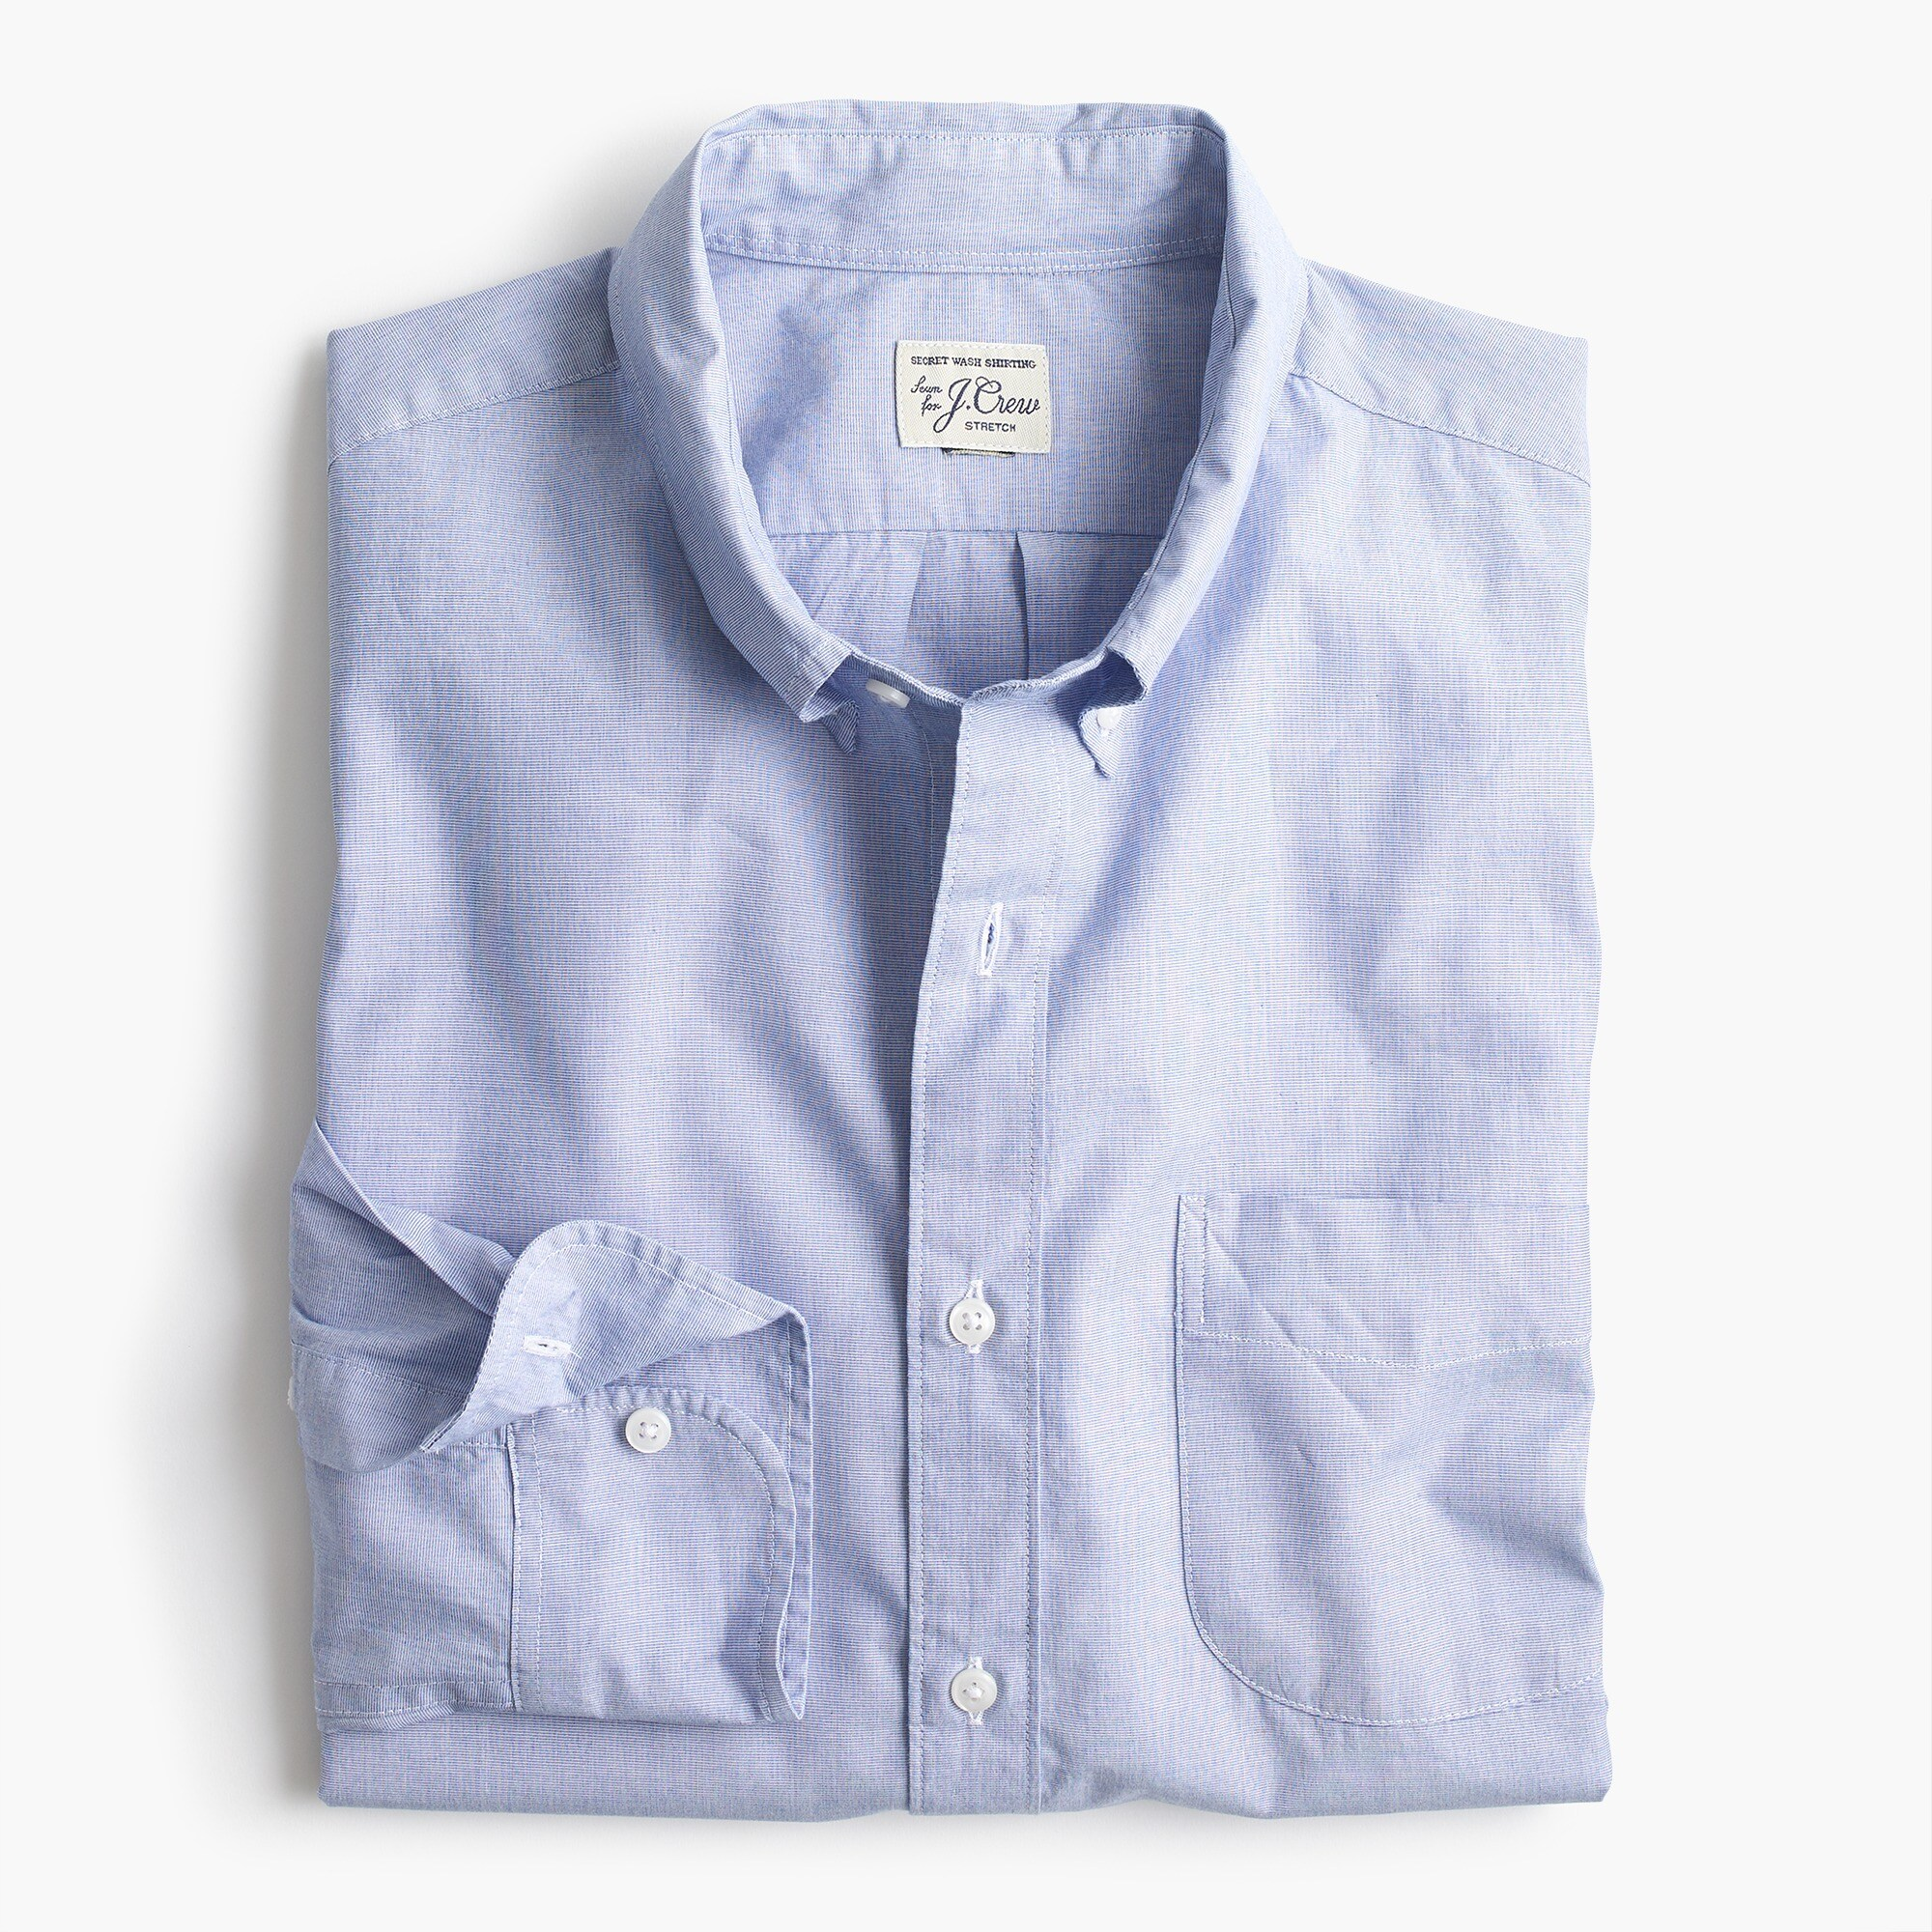 mens Untucked stretch Secret Wash shirt in end-on-end cotton poplin